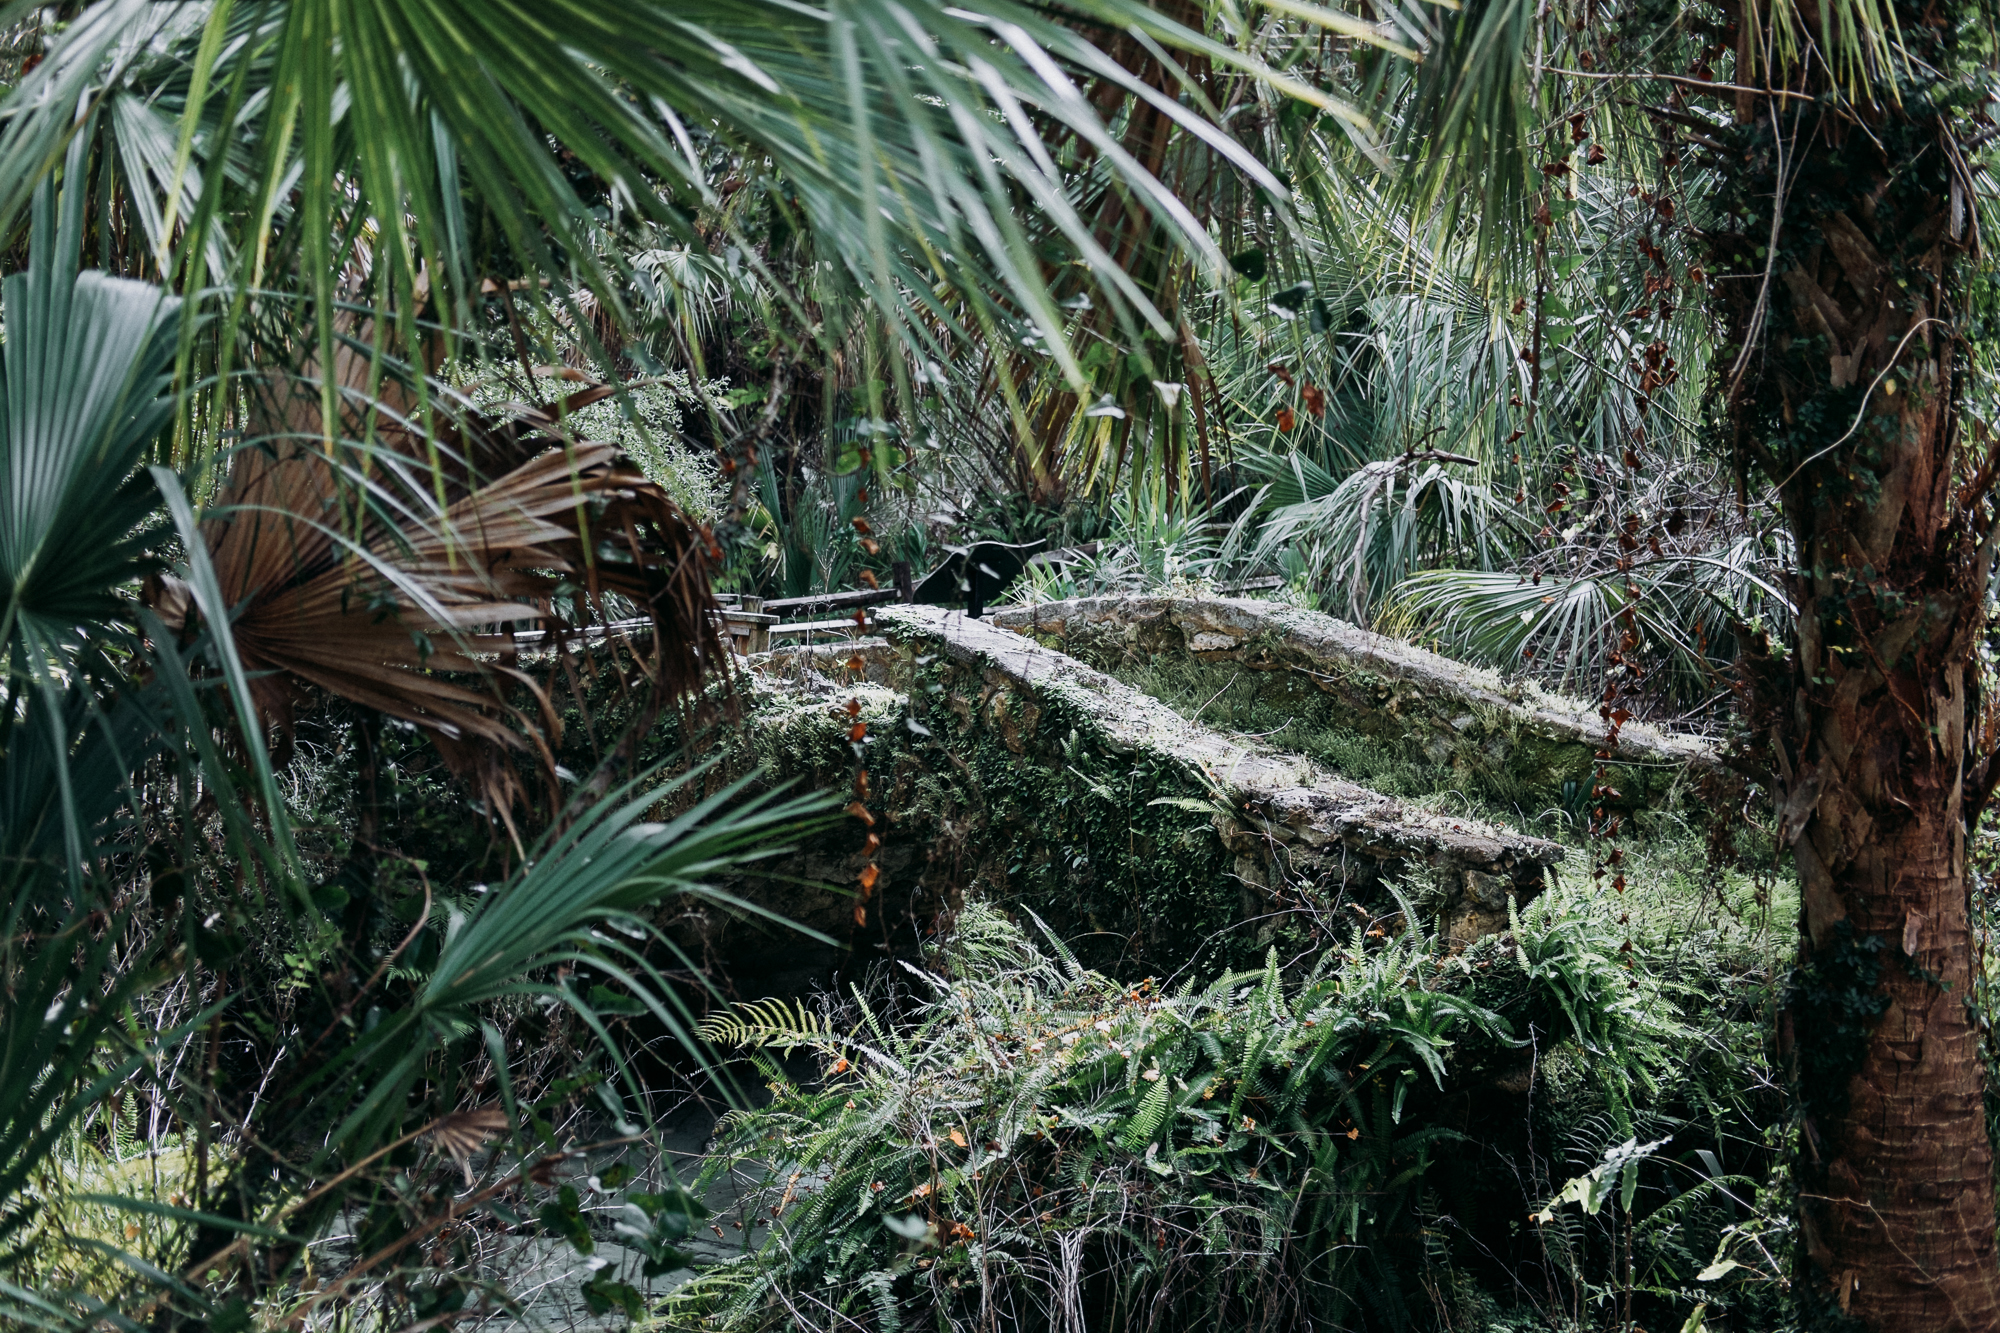 From-Coast-to-Coast-Camping-Juniper-Springs-ocala-national-forest-27-2658.jpg